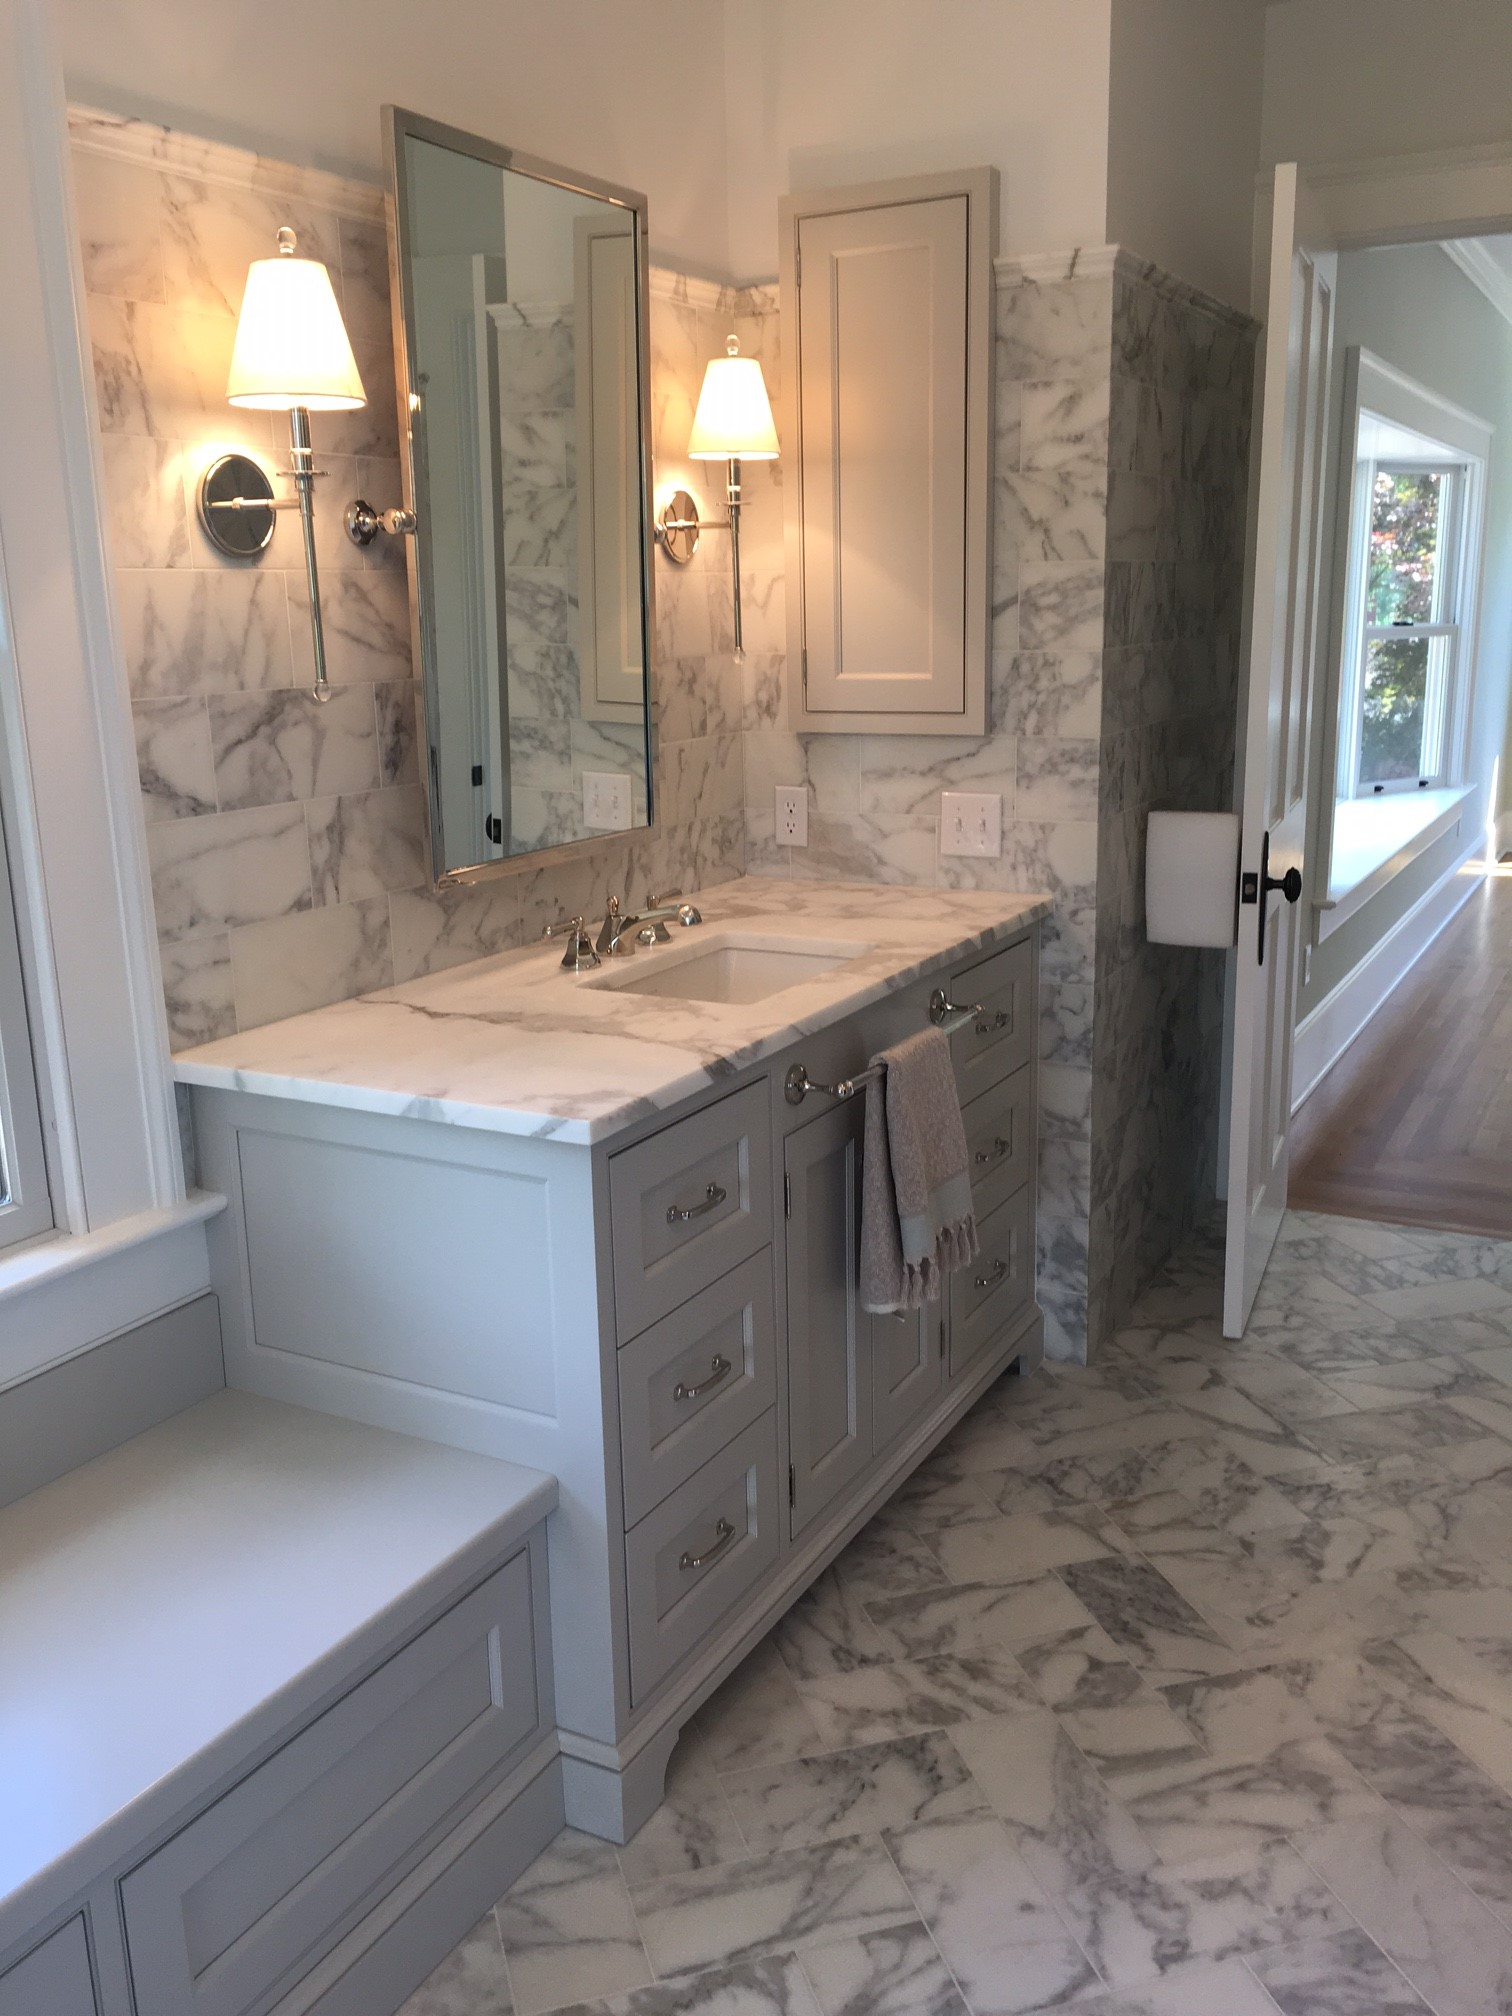 The Solid Color Paint On Superior Woodcraft Vanity Provides An Anchor Point In Middle Of Beautiful Stone Work With Lots Movement